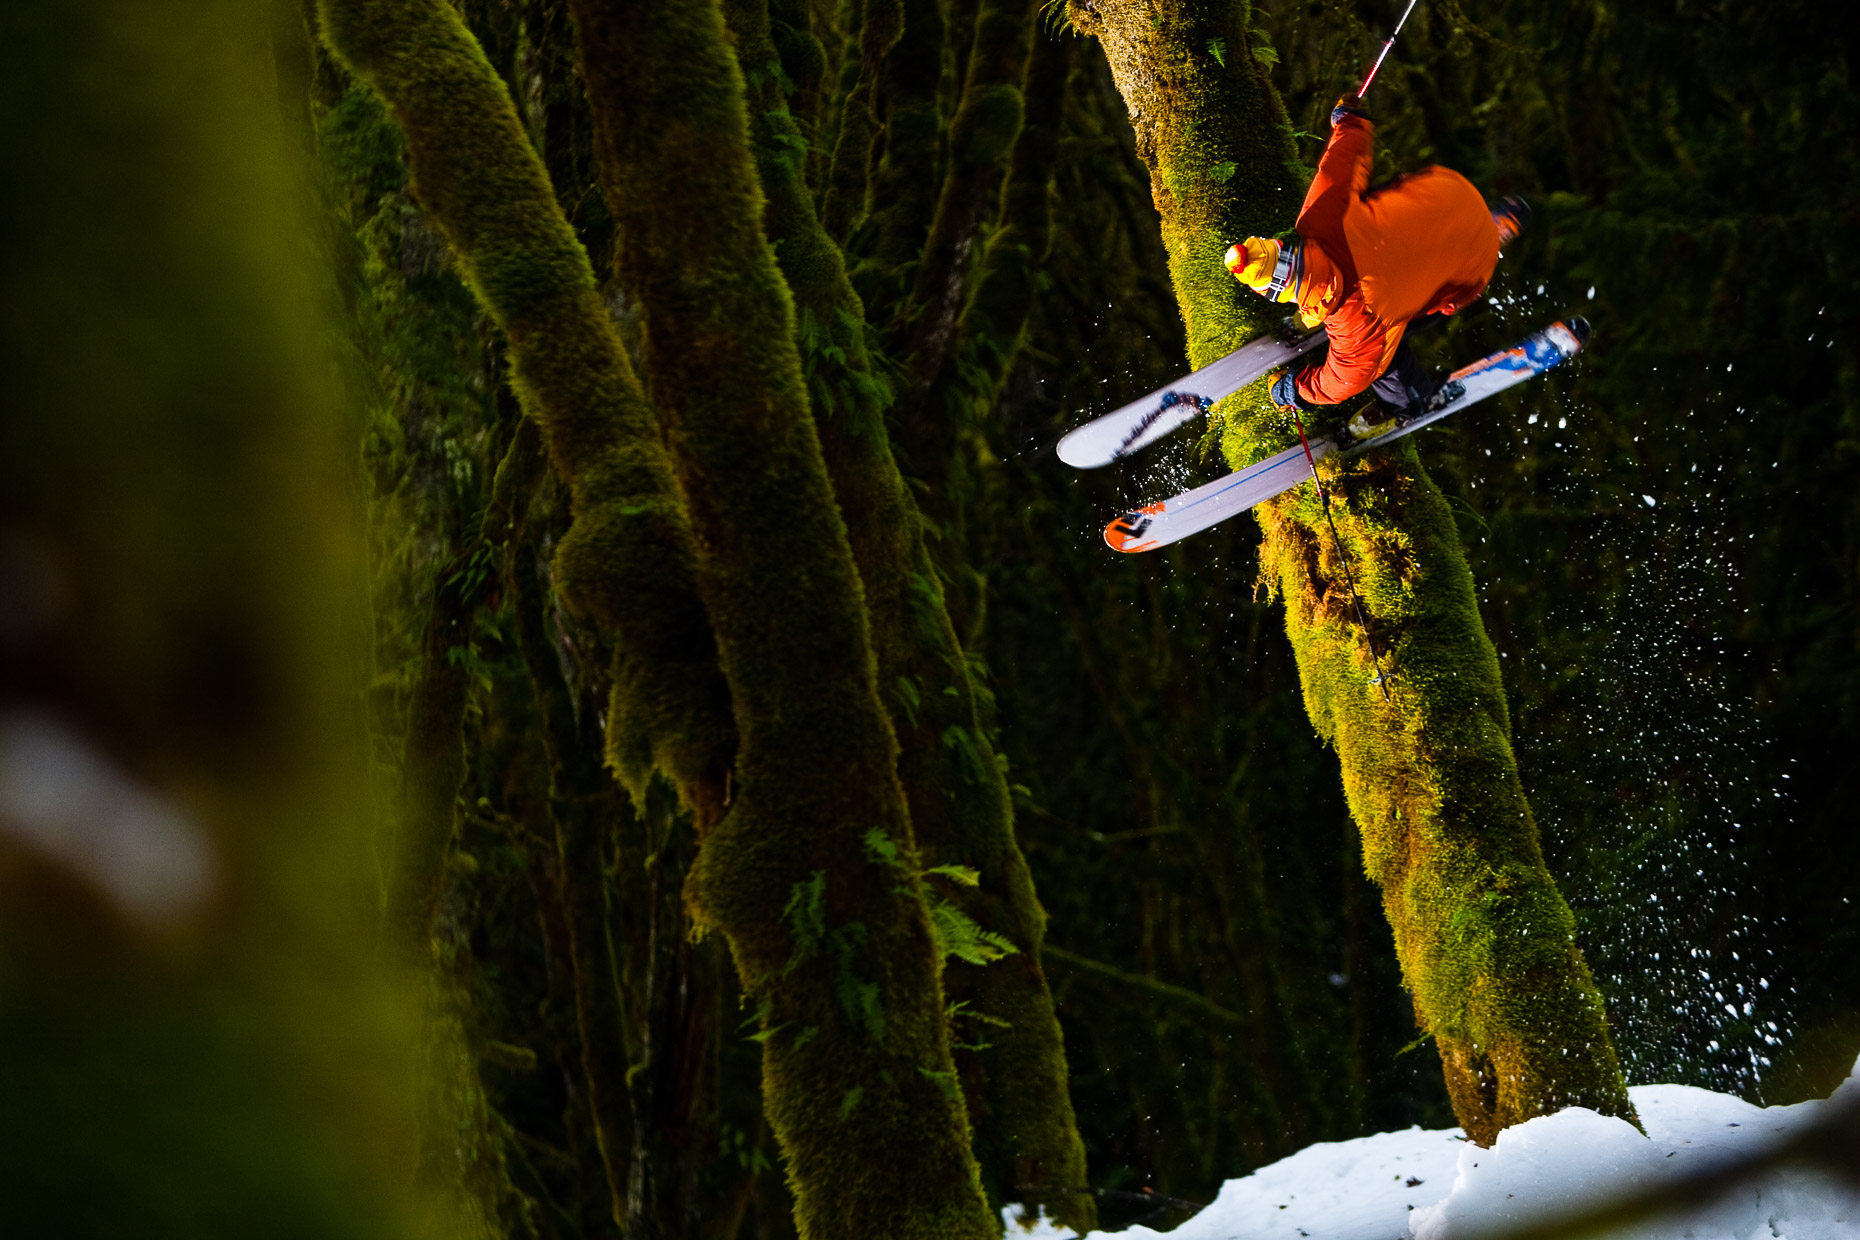 Zack Giffin, Skiing Rainforest, 018_200901111379